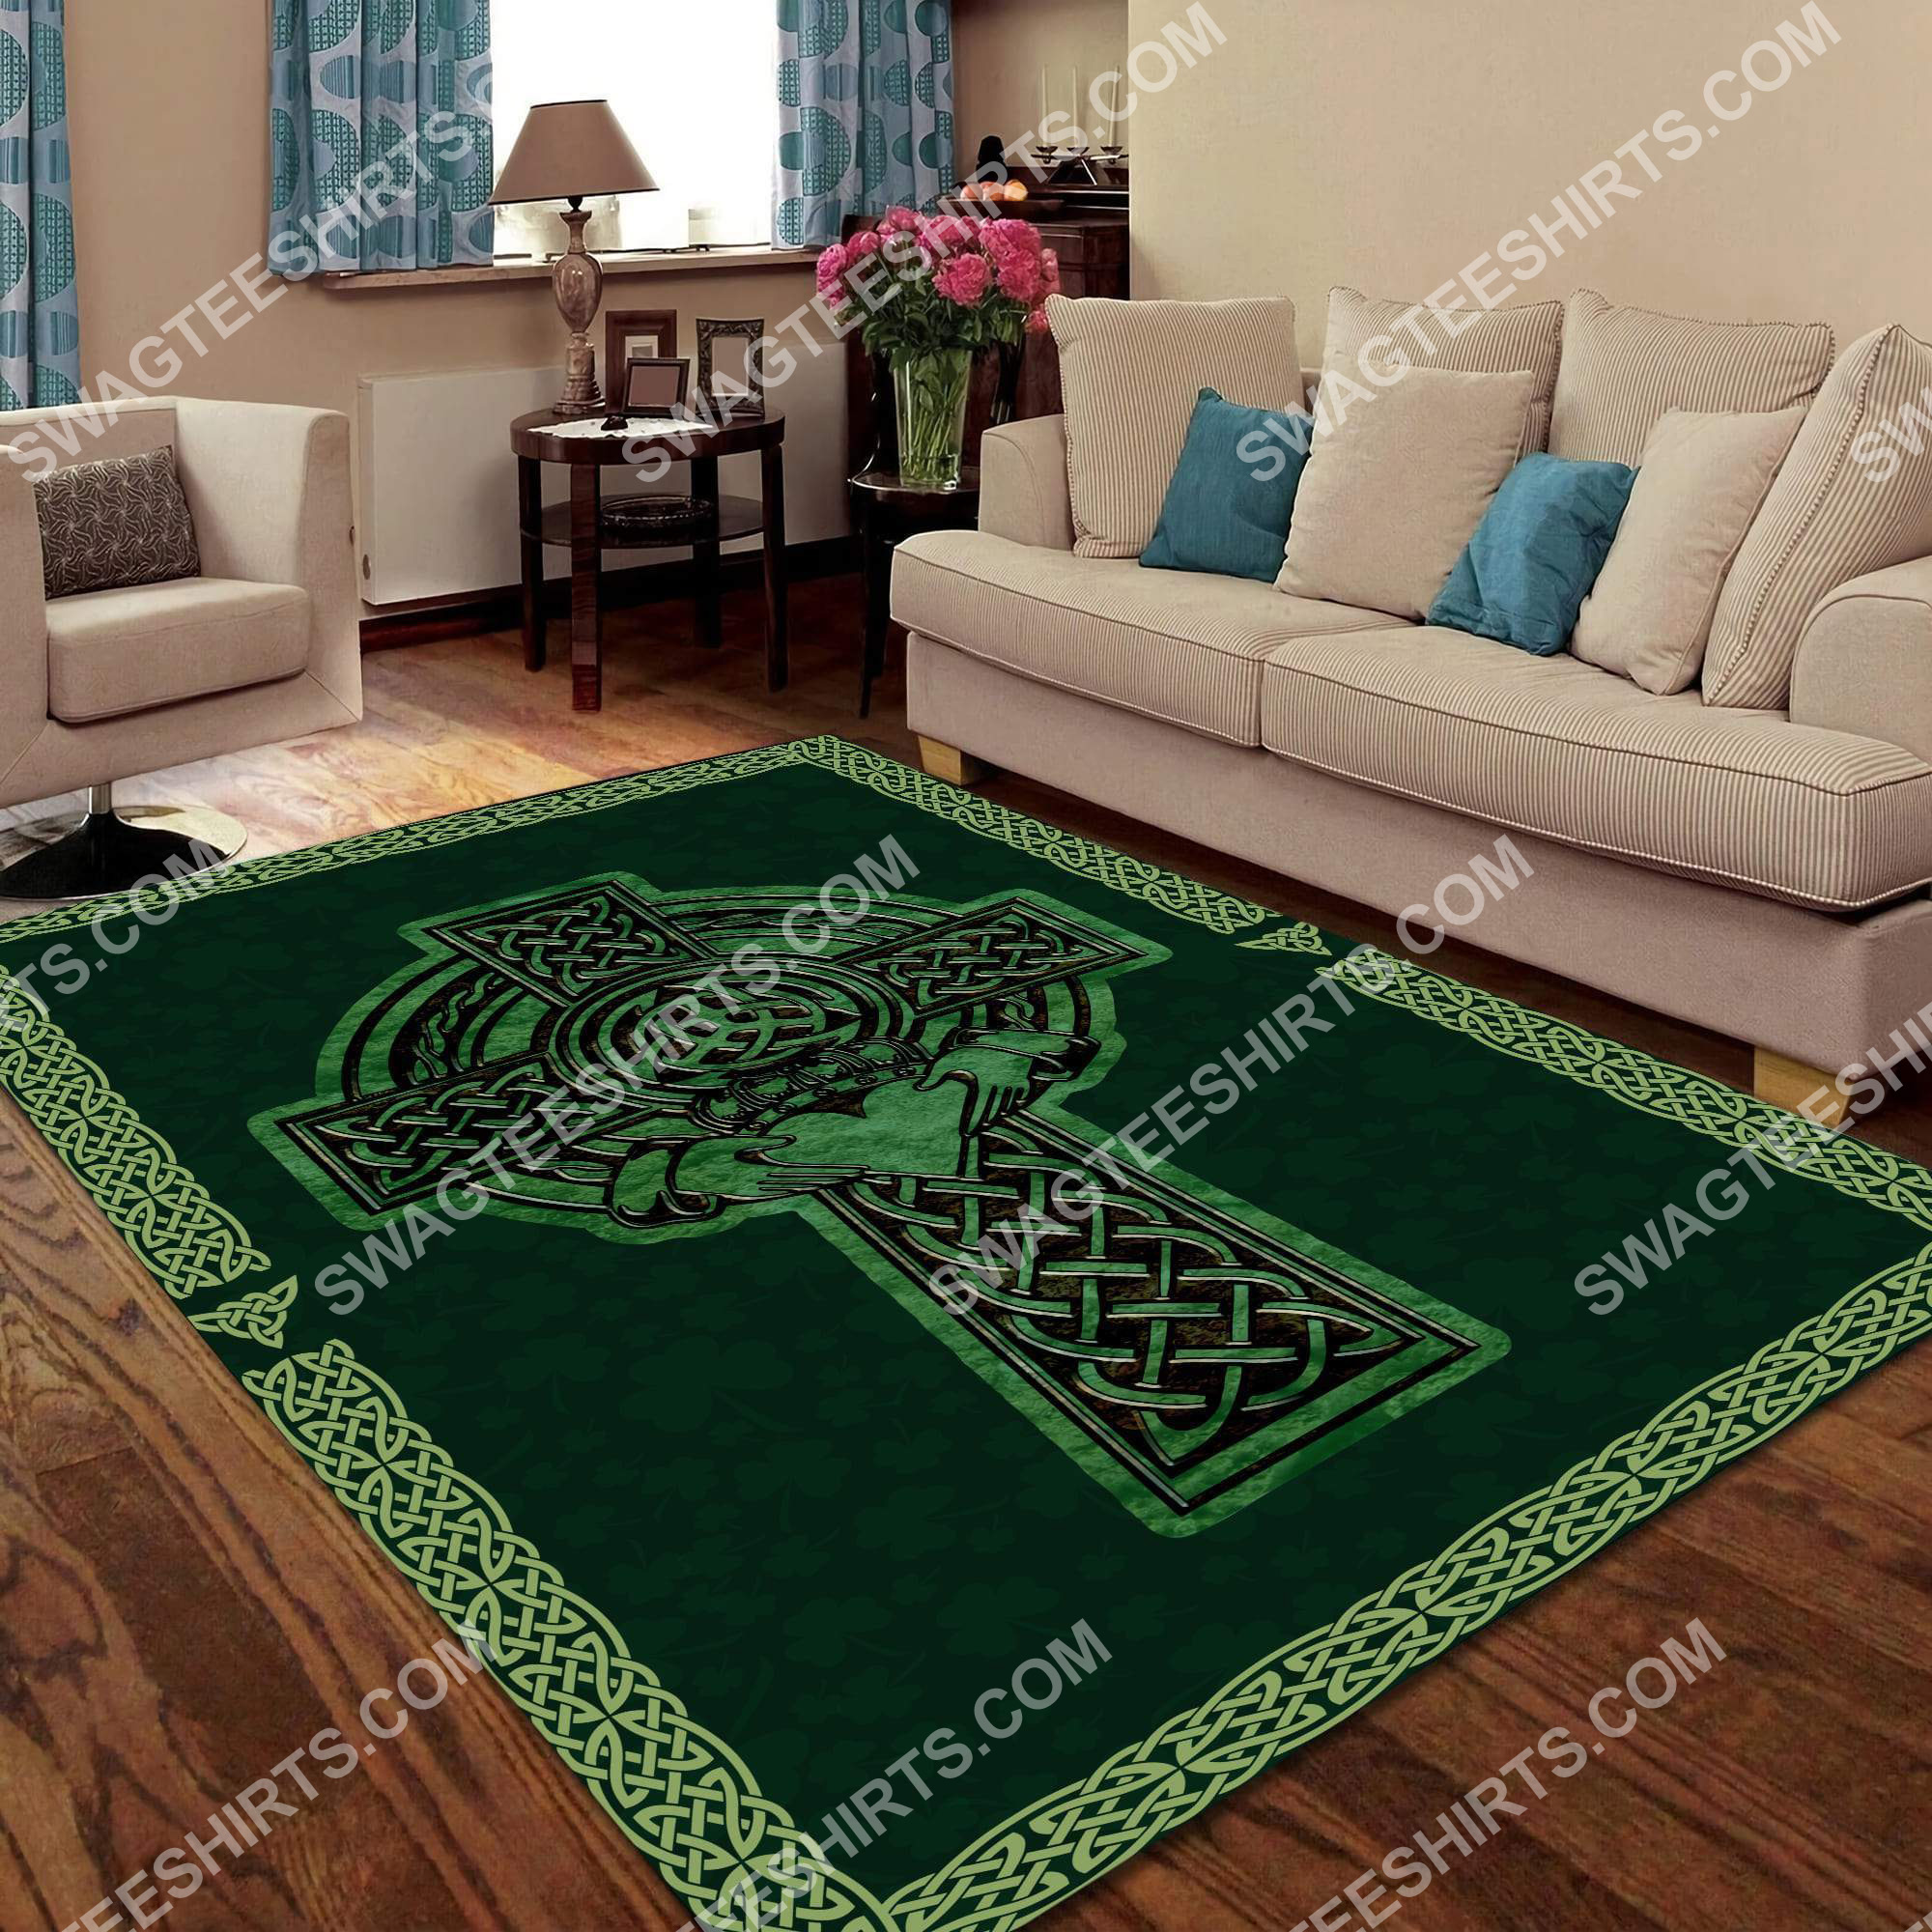 saint patrick's day cross all over printed rug 3(1)